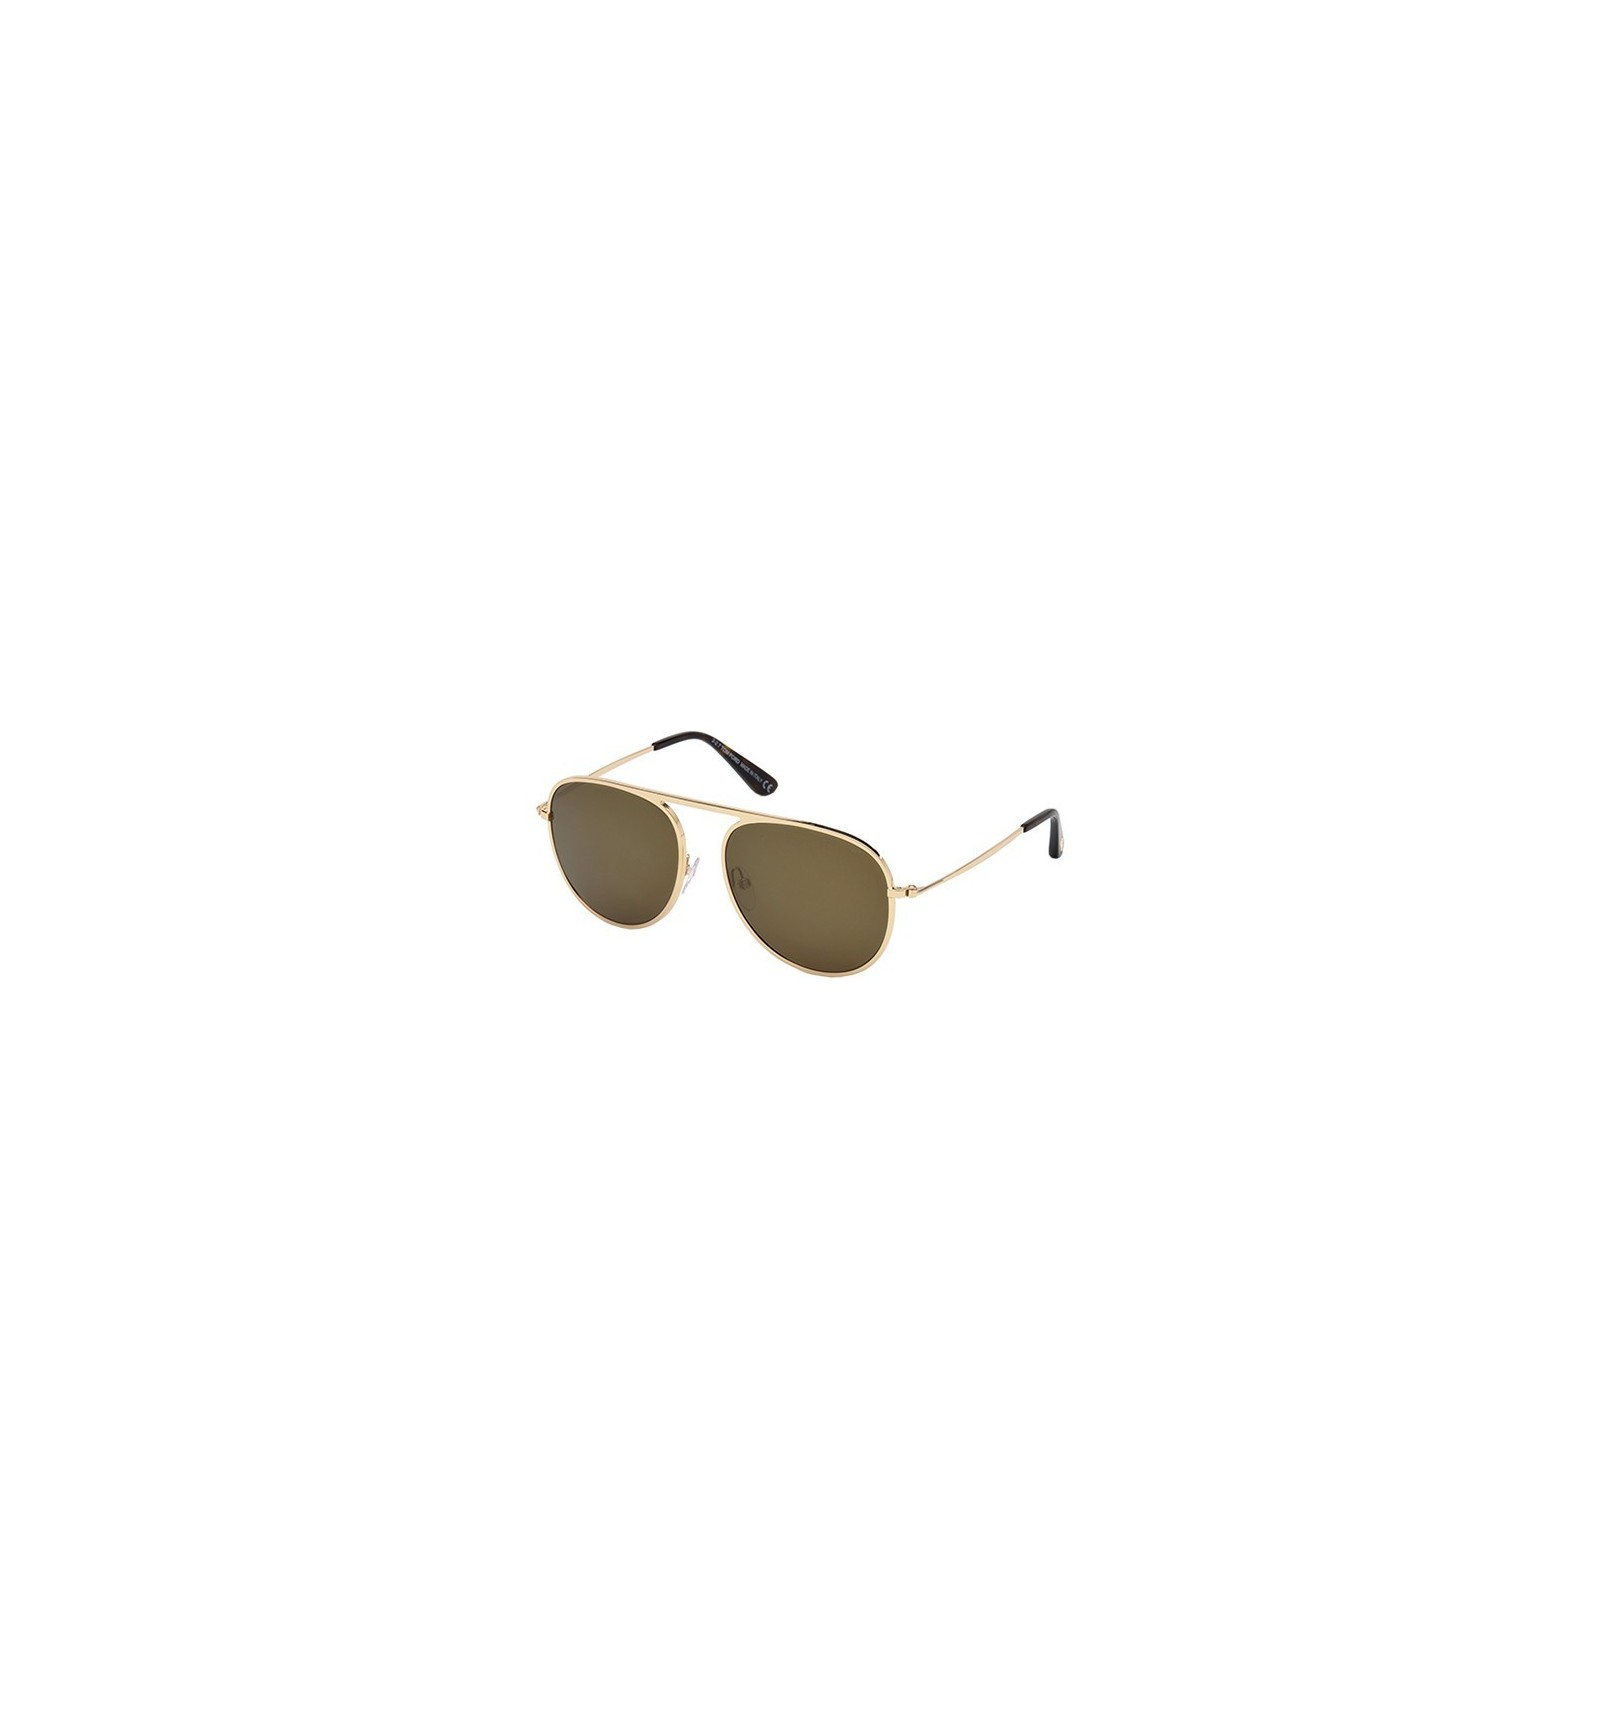 1aa18cbb25 Gafas de Sol Tom Ford FT0621 JASON Gold - Brown. Compra Online